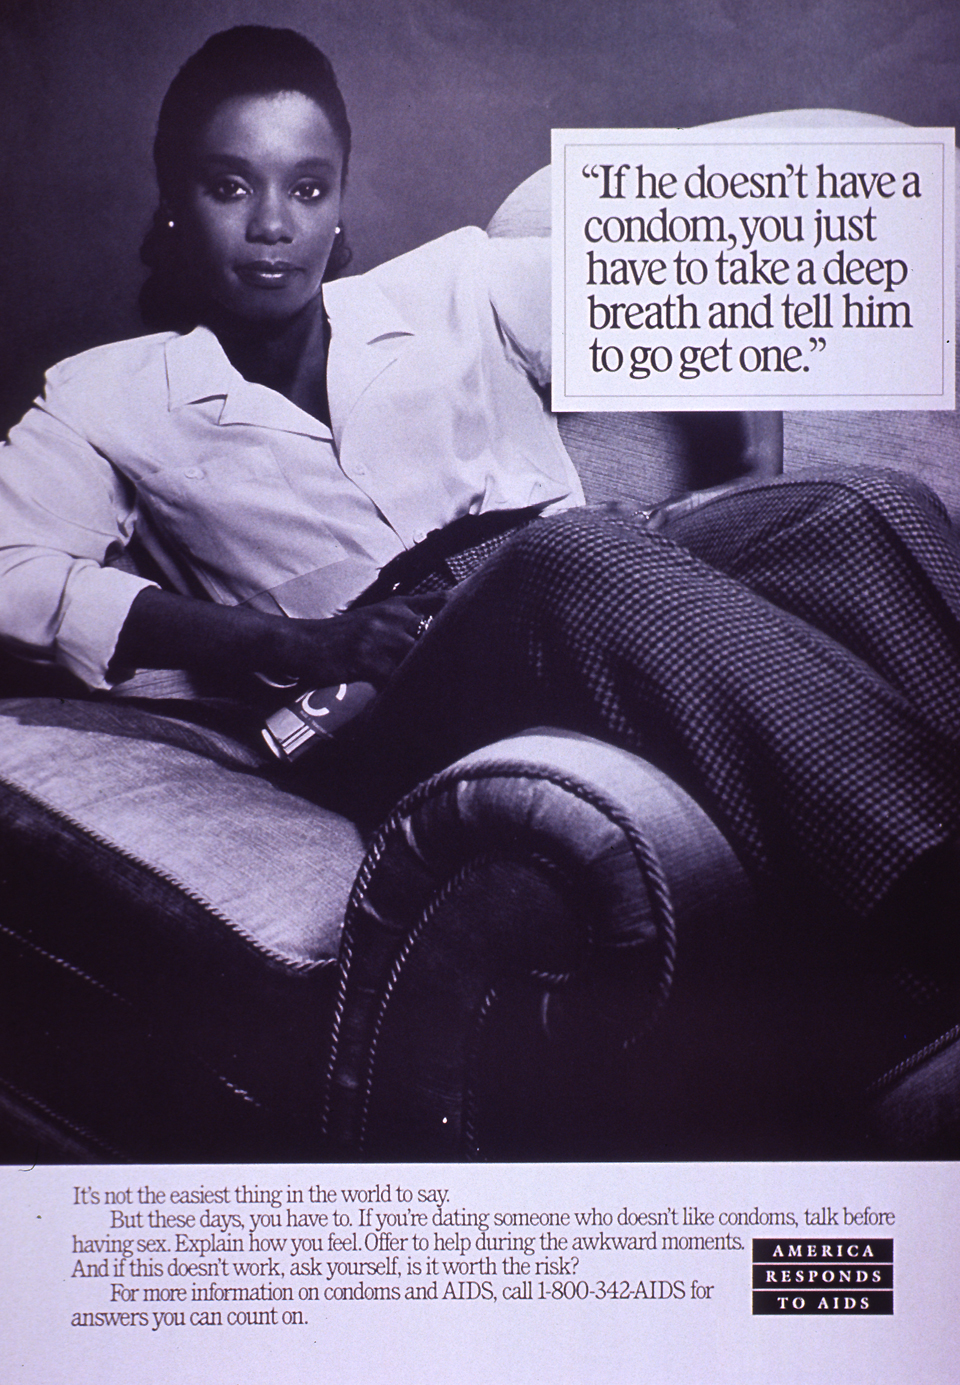 Black and white poster. Title If He Doesn't Have a Condom in the upper right corner. Visual image is a black and whtie photo reproduction featuring a young woman. She reclines on a couch. Caption below photo encourages talking about condom use with a sexual partner. Note in lower right corner